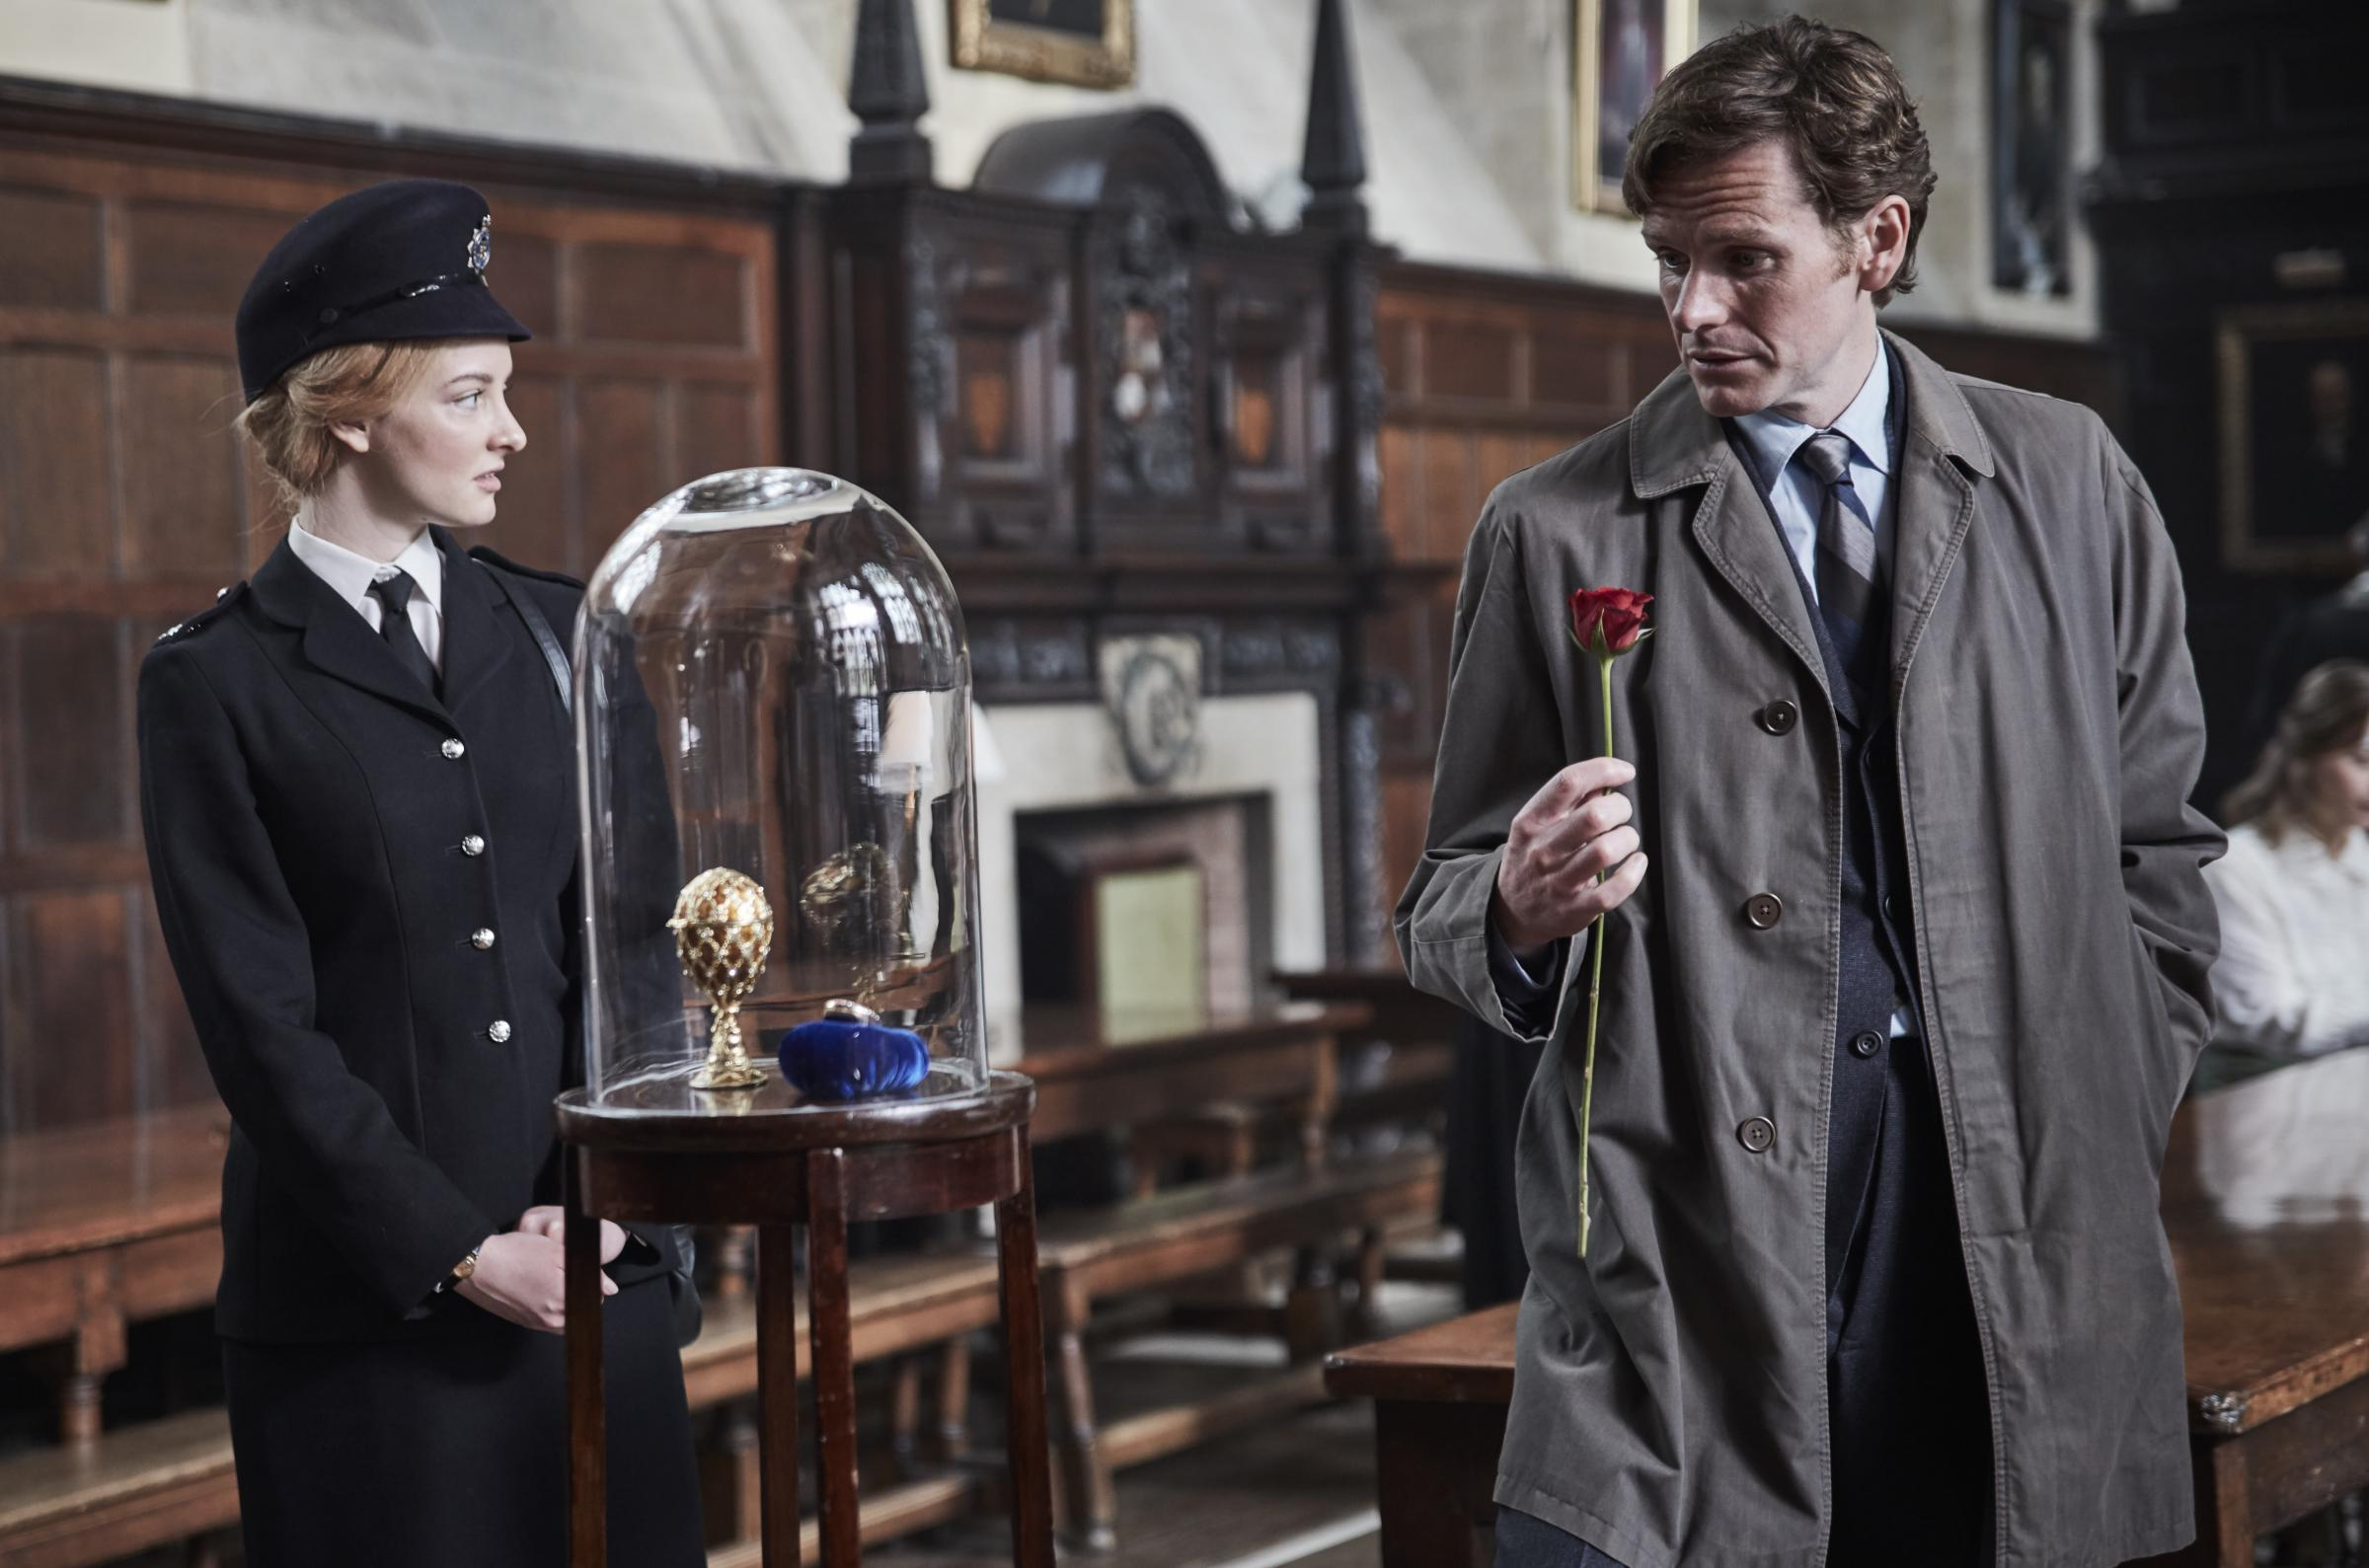 Dakota Blue Richards as WPC Shirley Trewlove and Shaun Evans as Detective Sgt Endeavour Morse in the new series of Endeavour